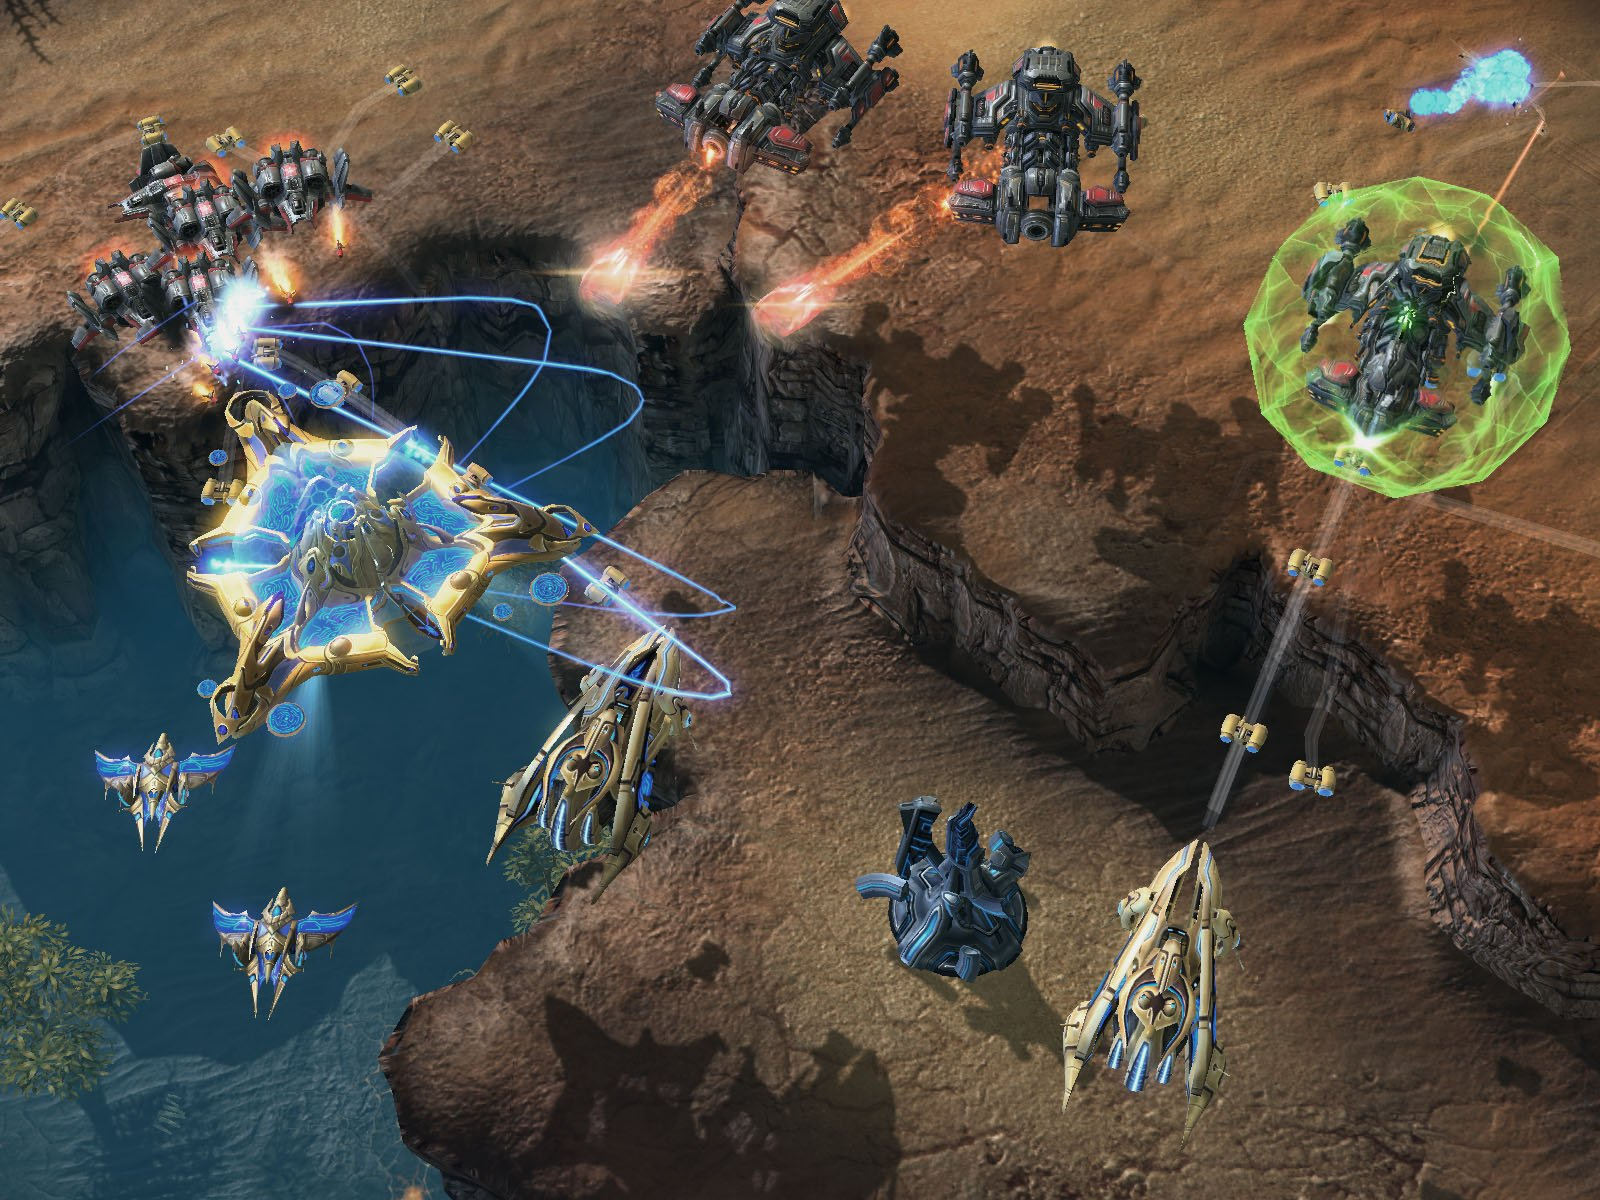 Starcraft II: Wings of Liberty Collector's Edition - PC by Blizzard Entertainment (Image #4)